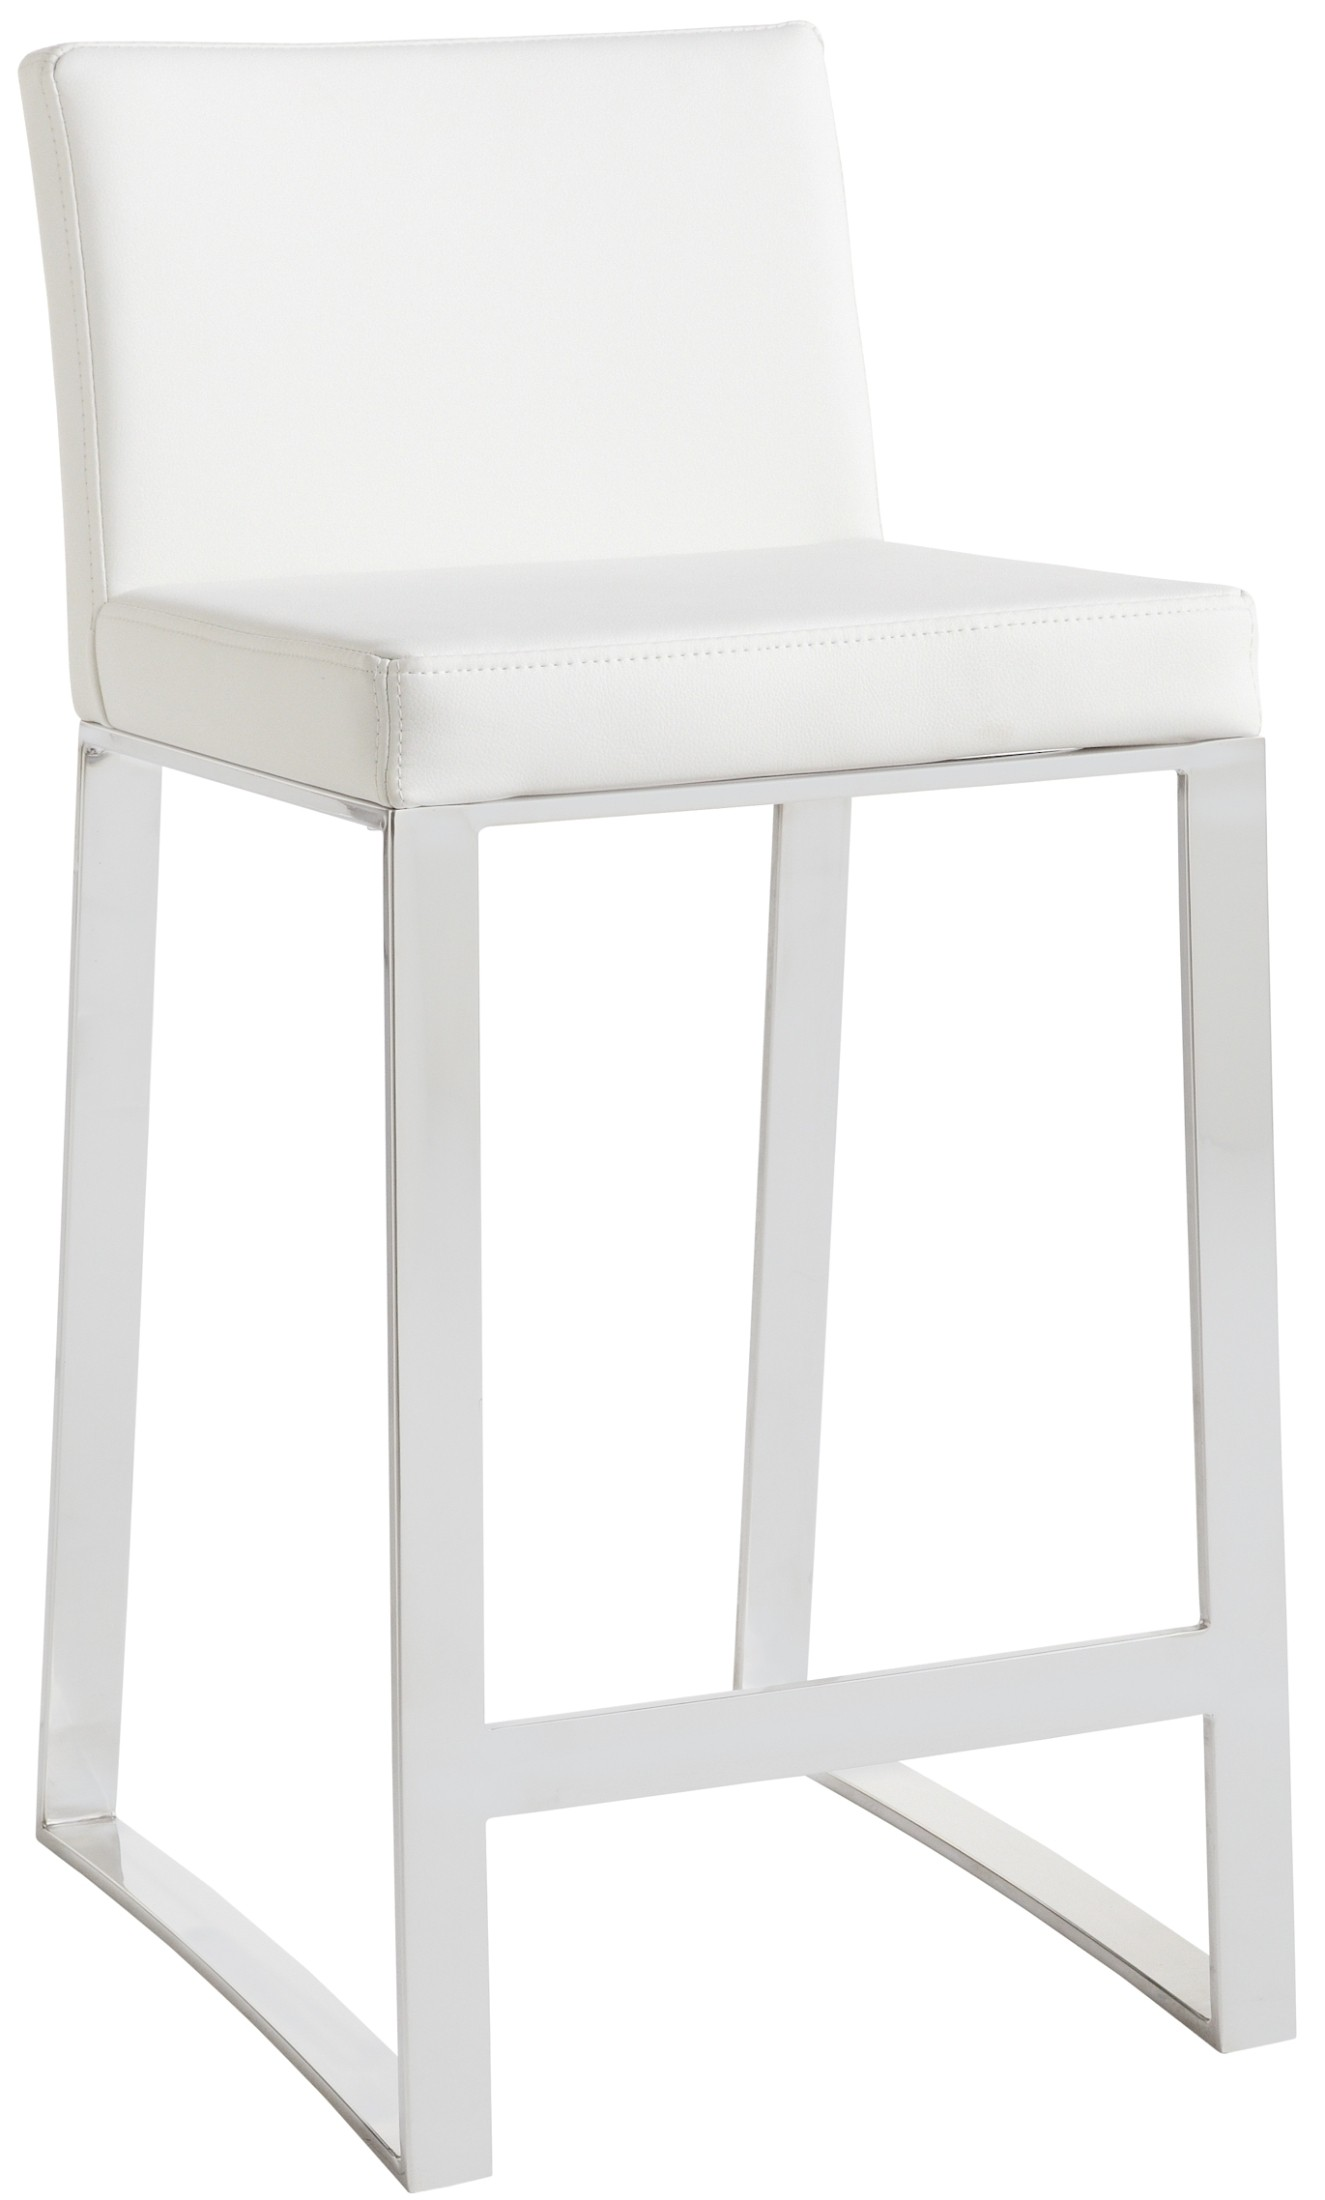 Architect White Counter Stool From Sunpan 36286